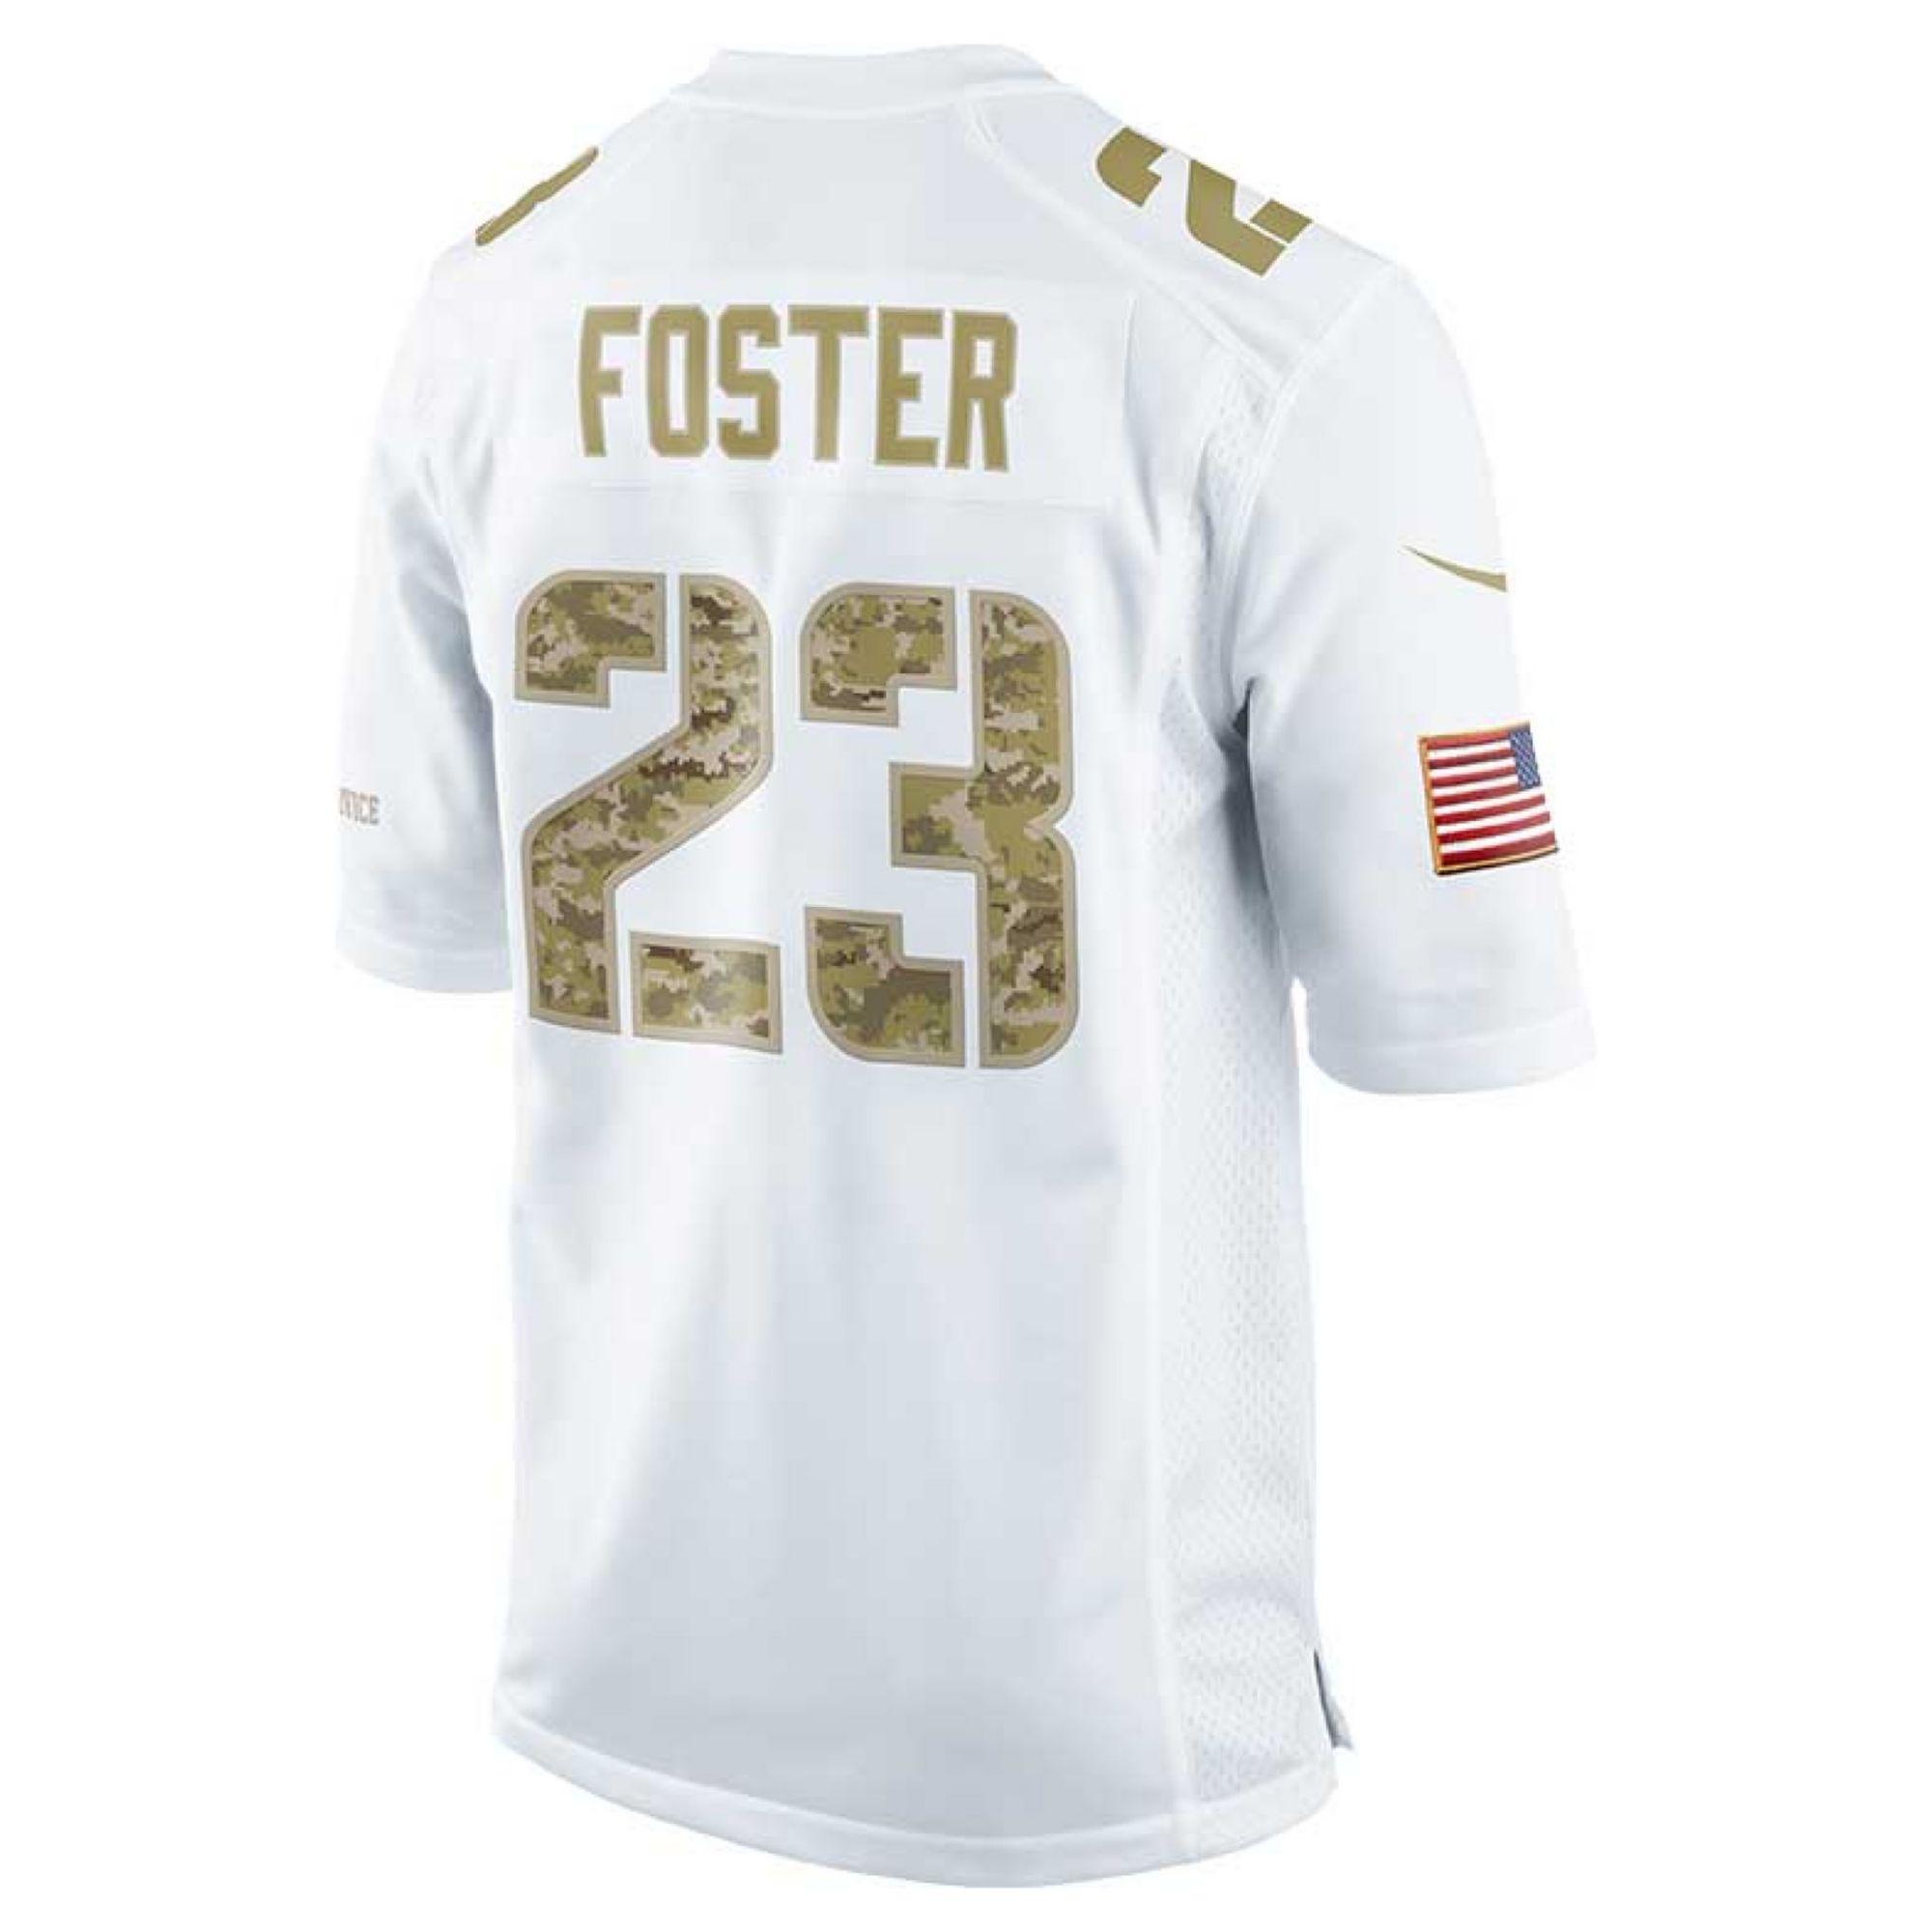 nike-white-arian-foster-houston-texans-jersey-product-1-19705075-0-333864661-normal.jpeg